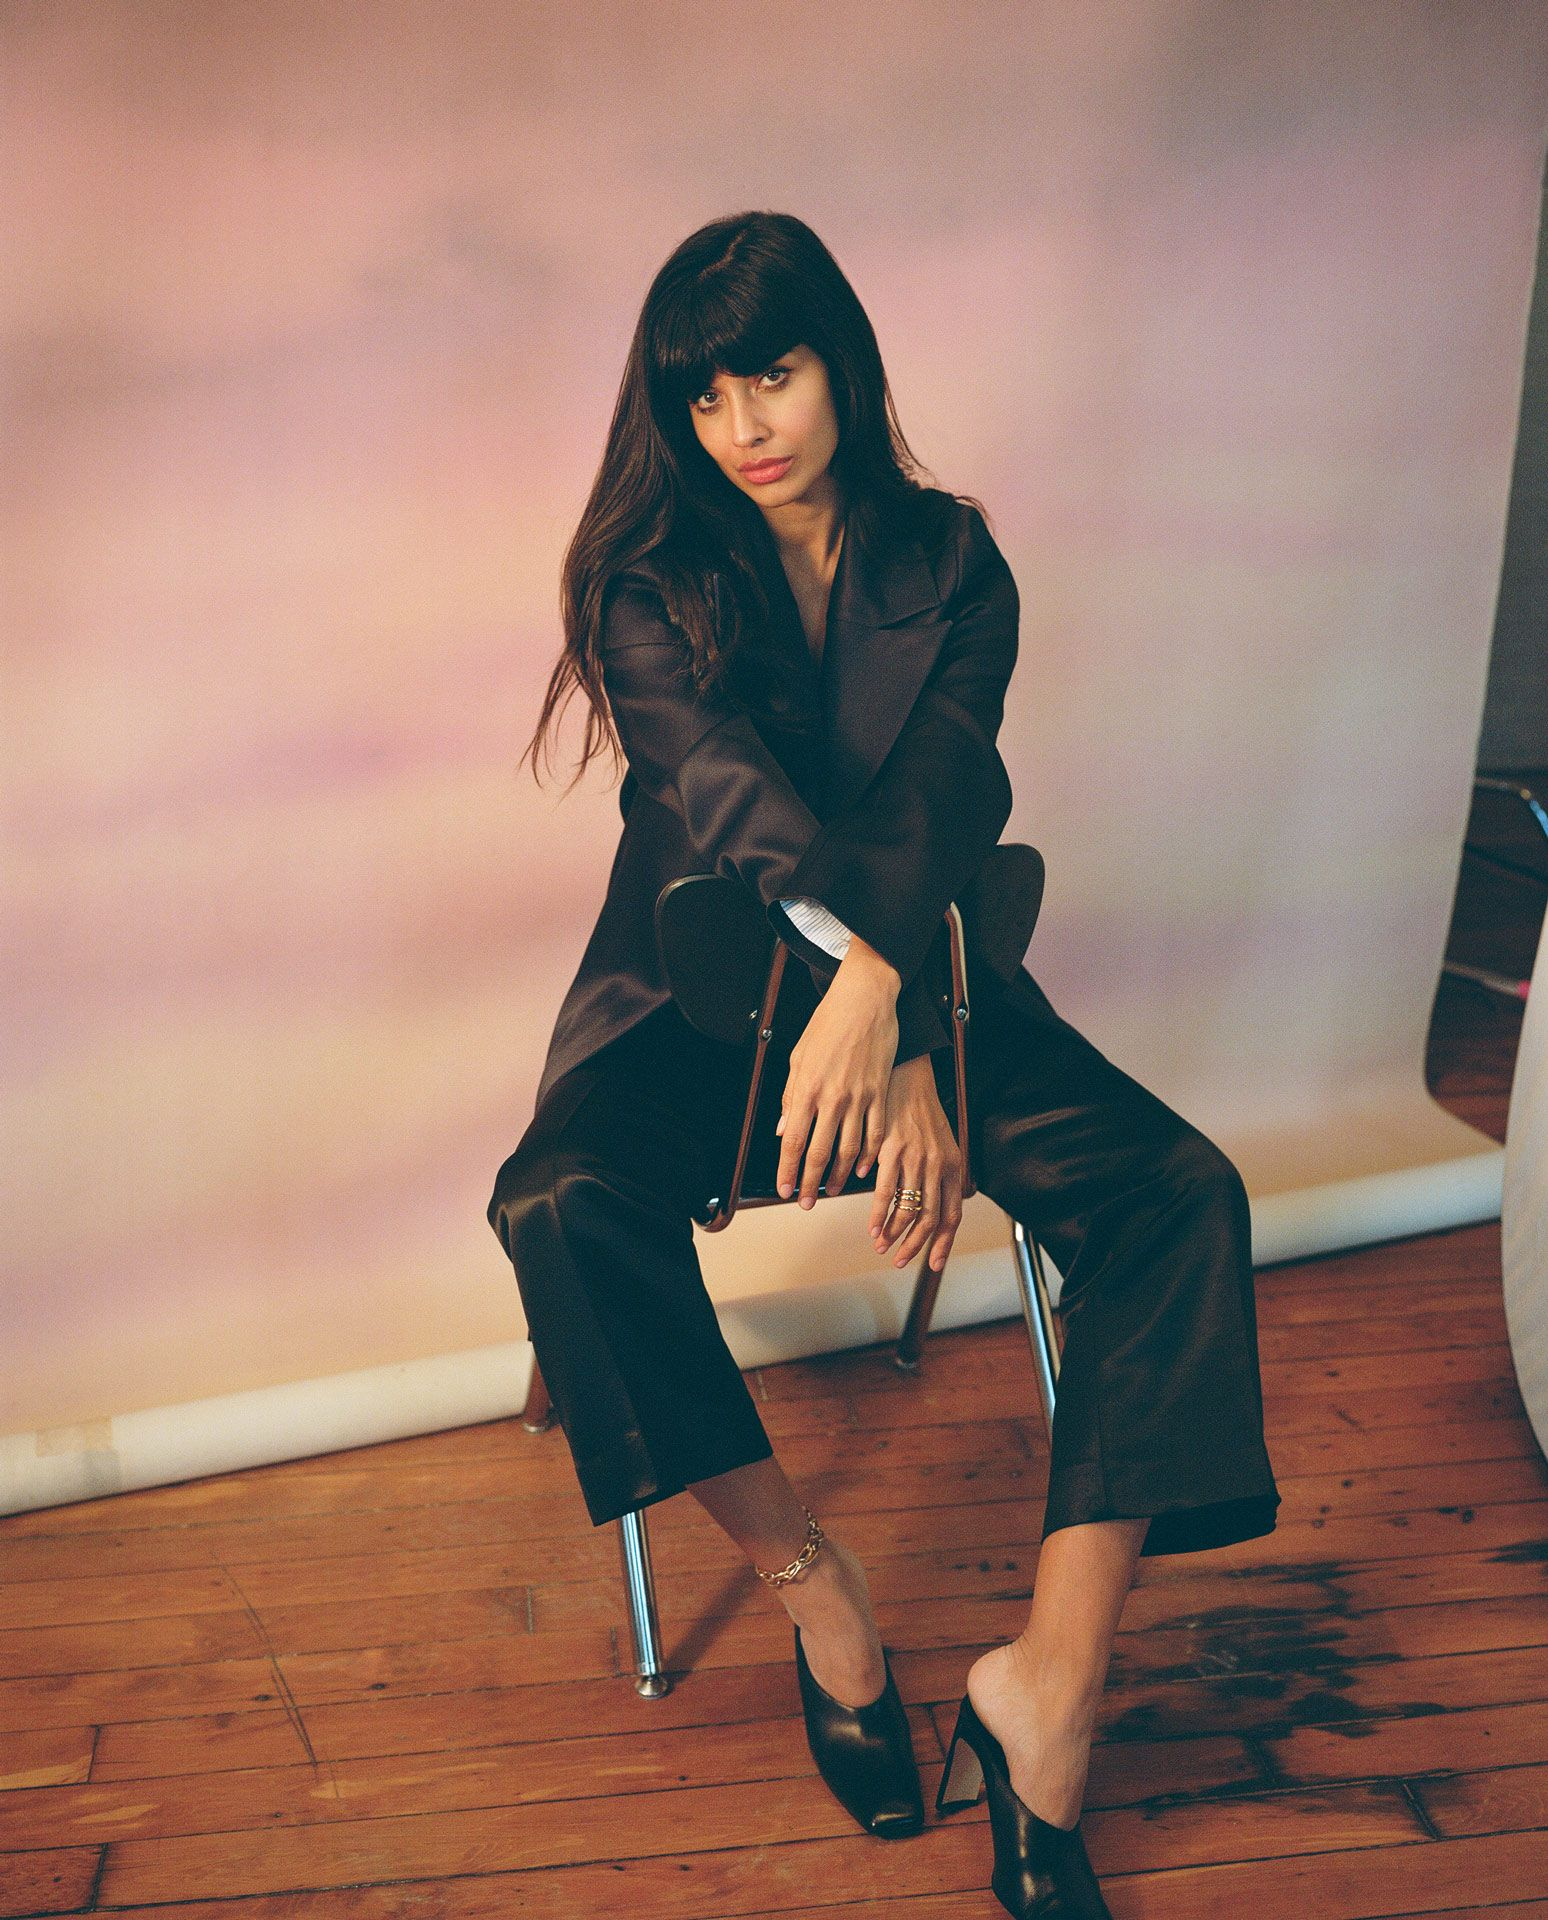 picture of actress Jameela Jamil sitting backward on a chair looking at camera by Oumayma B. Tanfous for Vogue Spain